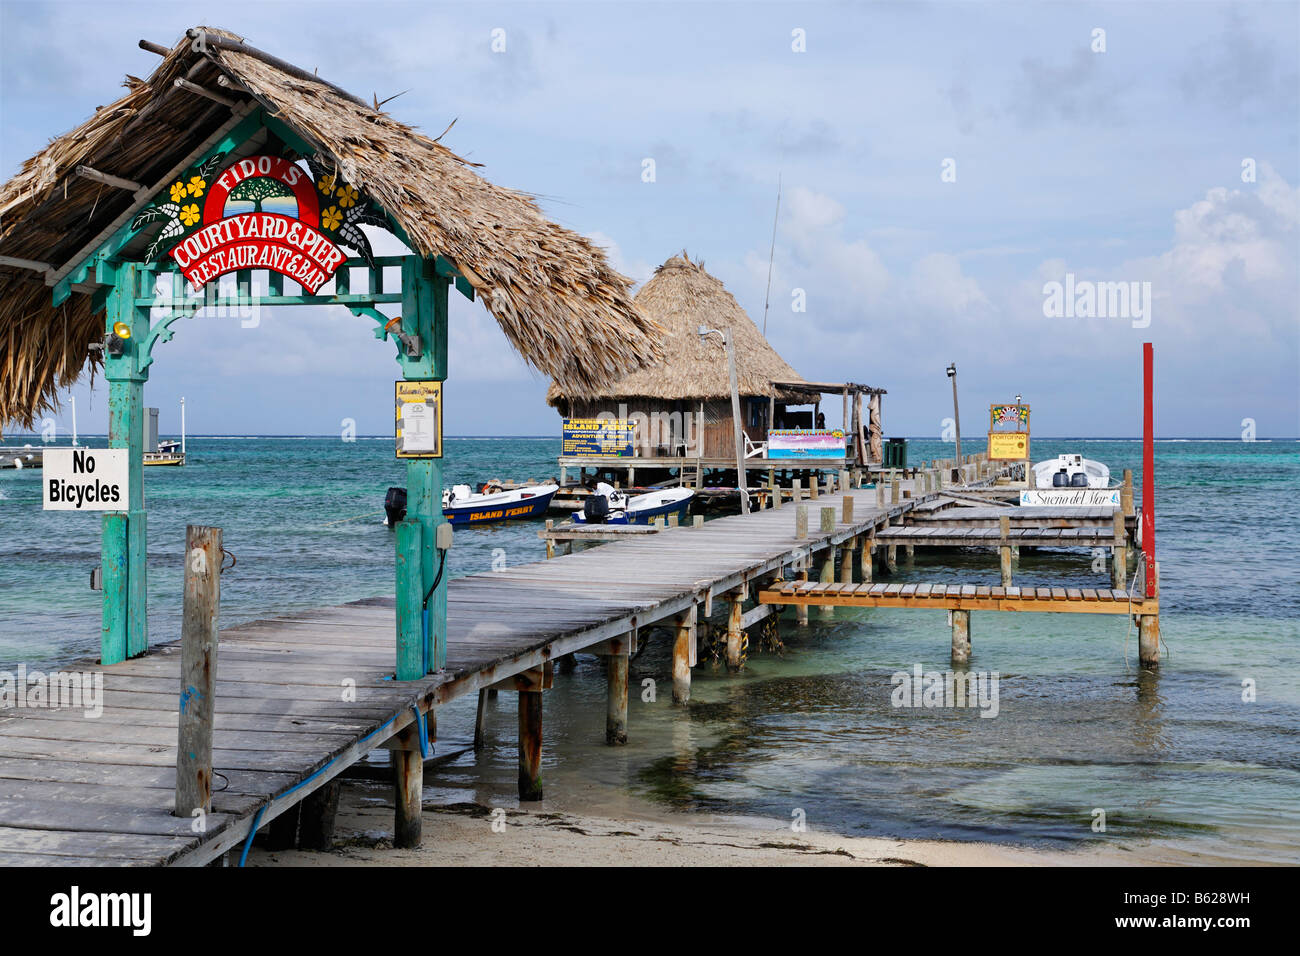 Restaurant at the end of a pier in the ocean of San Pedro, Ambergris Cay Island, Belize, Central America, Caribbean Stock Photo